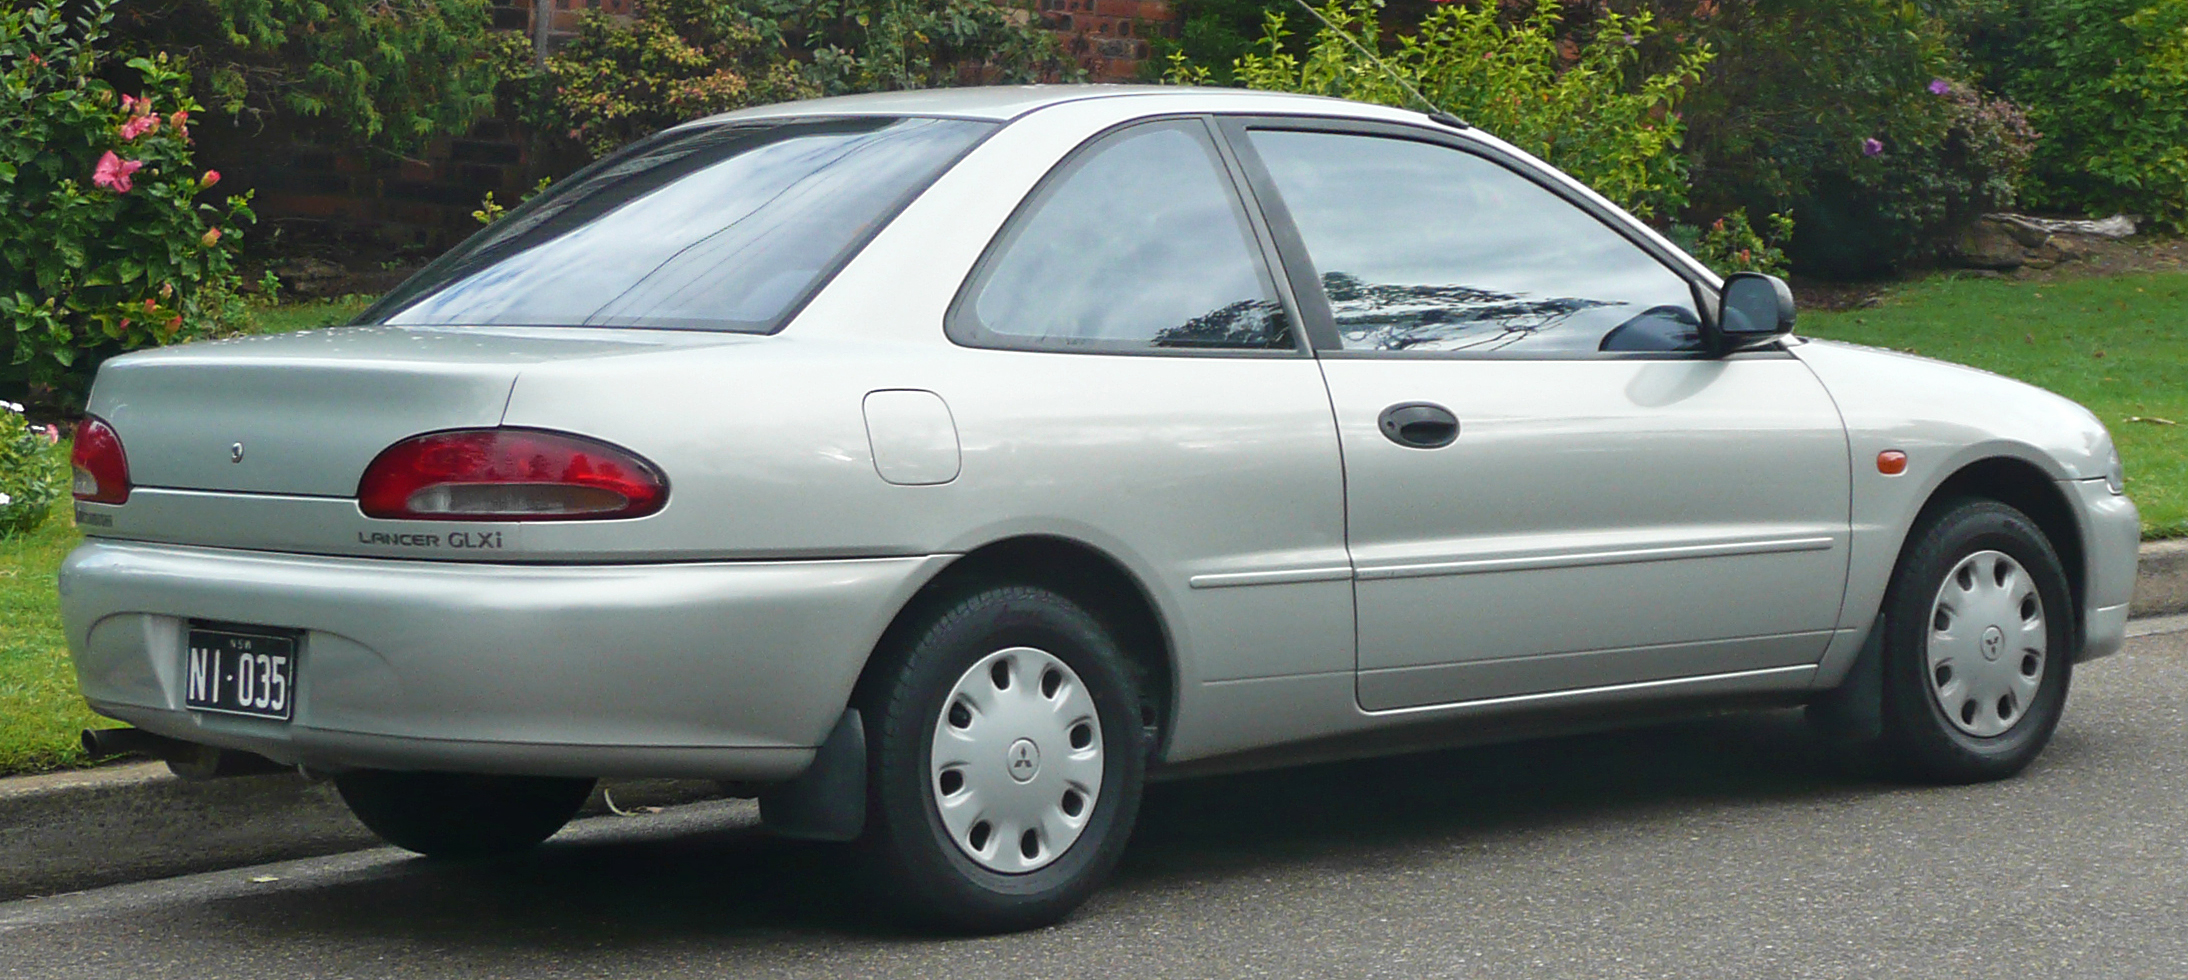 File:1995-1996 Mitsubishi Lancer (CC) GLXi coupe 02.jpg - Wikimedia Commons